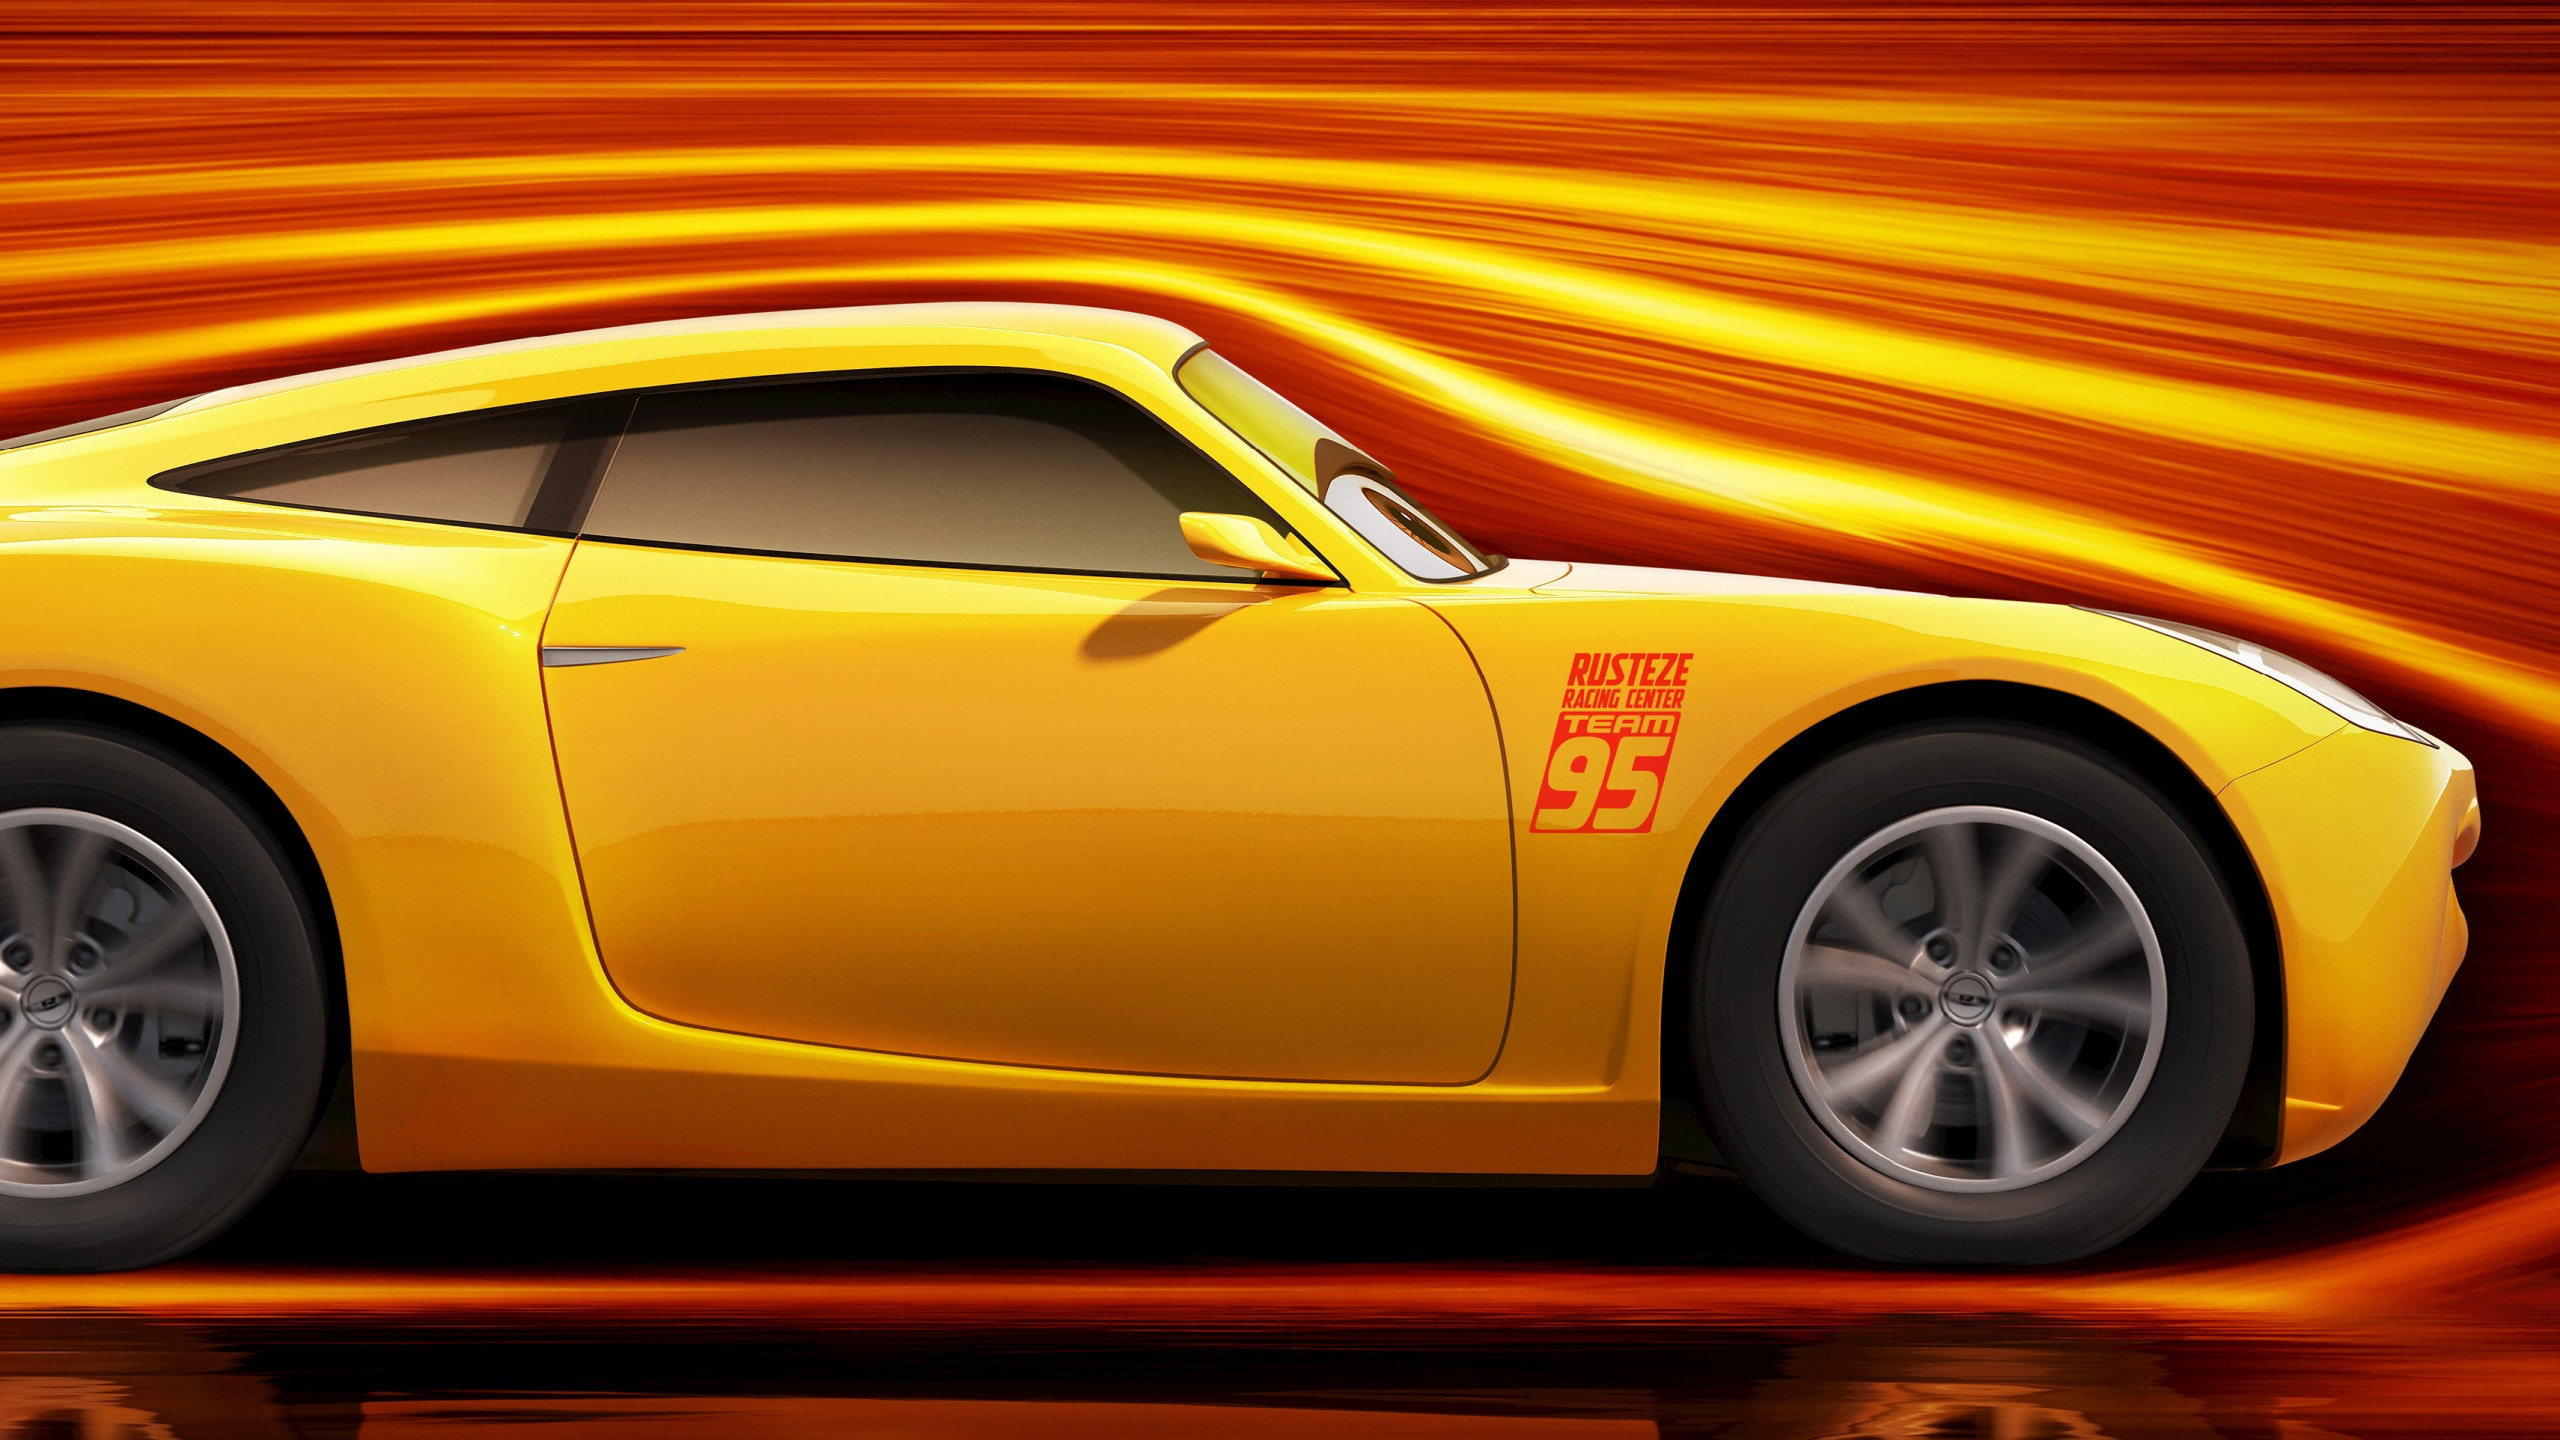 Girl 3 Monitor Wallpaper Cars 3 Cruz Ramirez Wallpapers Hd Wallpapers Id 19961